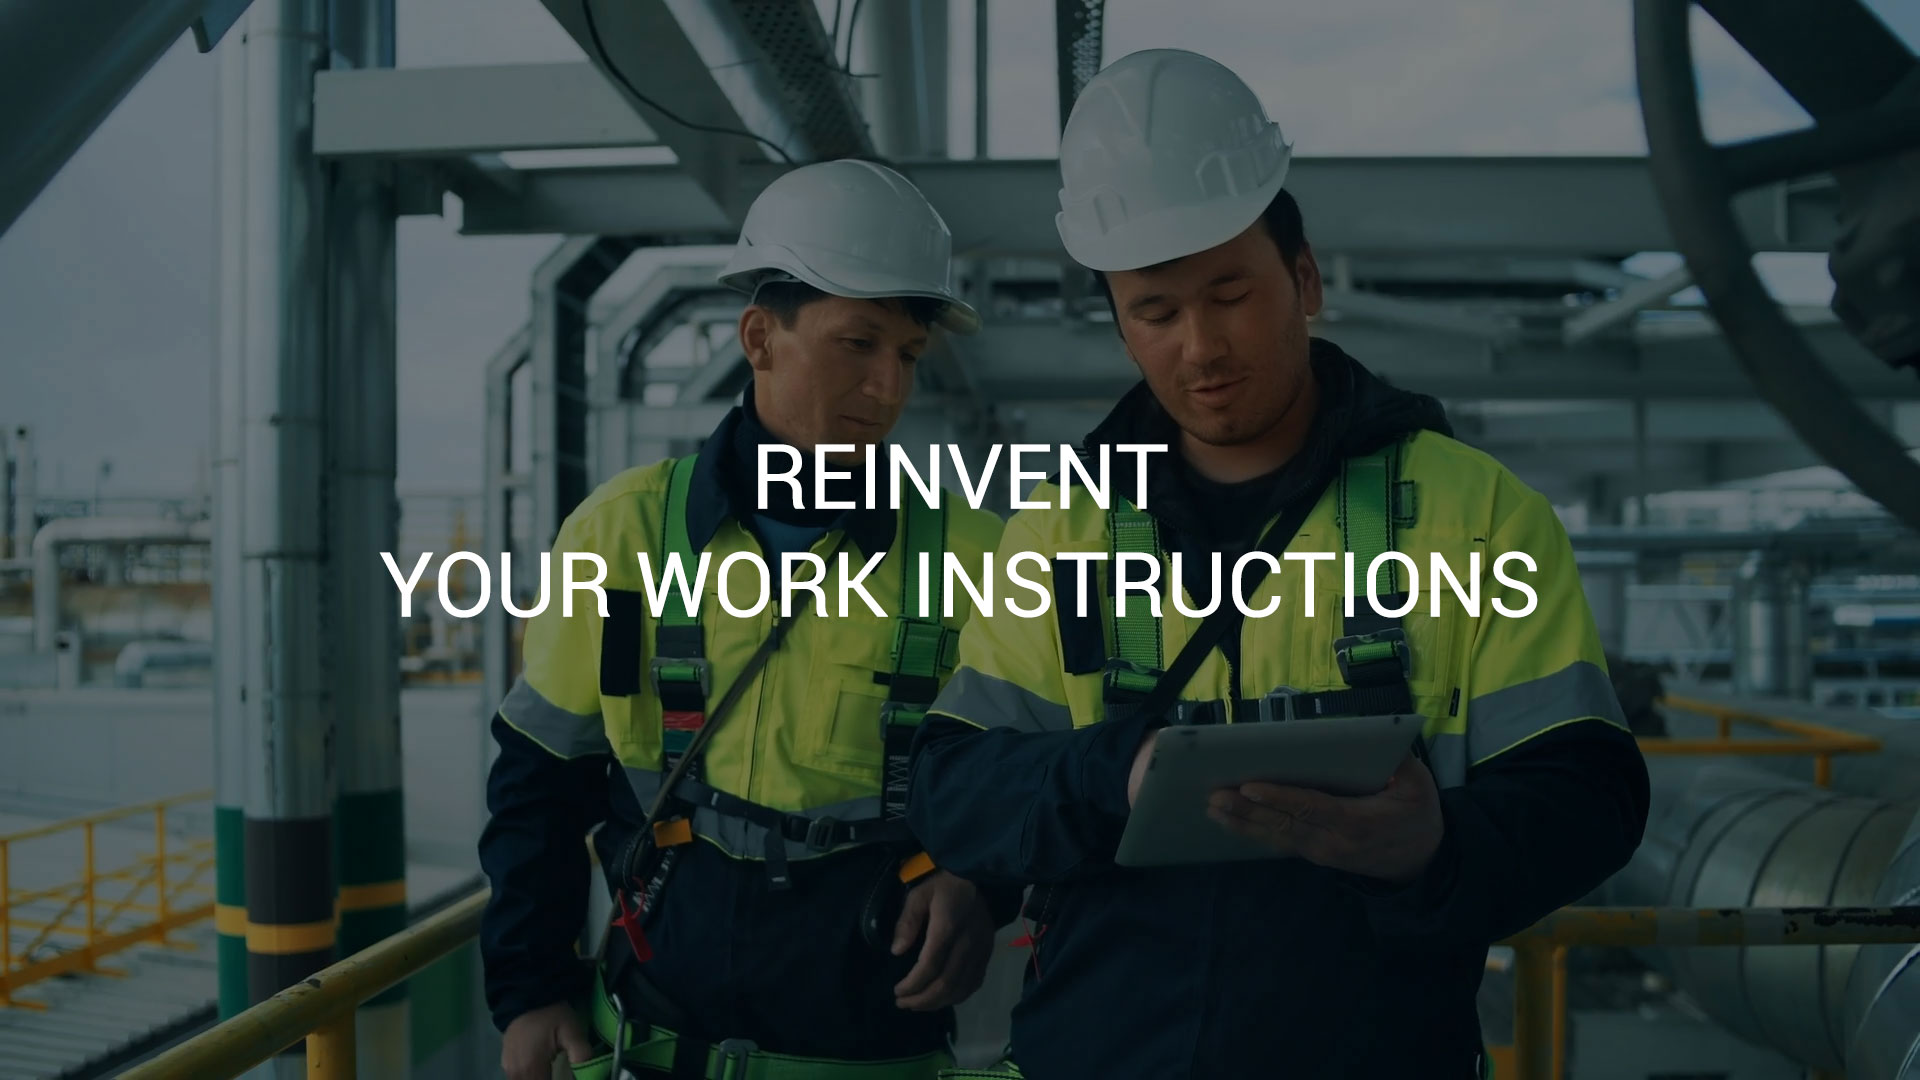 Reivent your work instructions